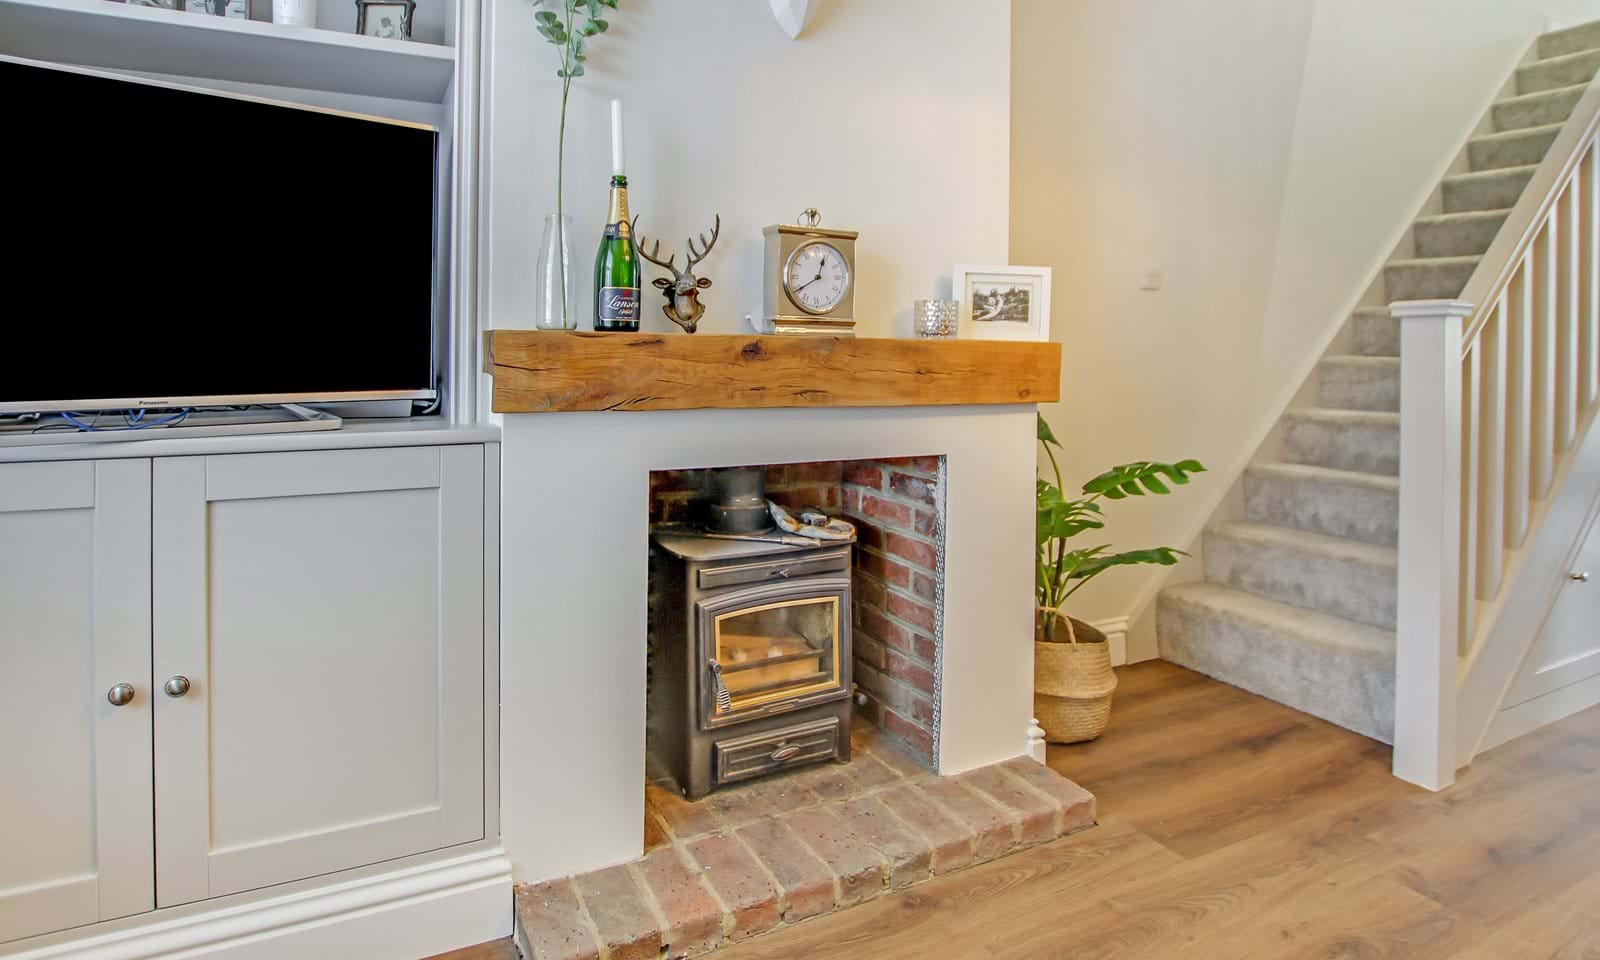 fireplace with Log Burner